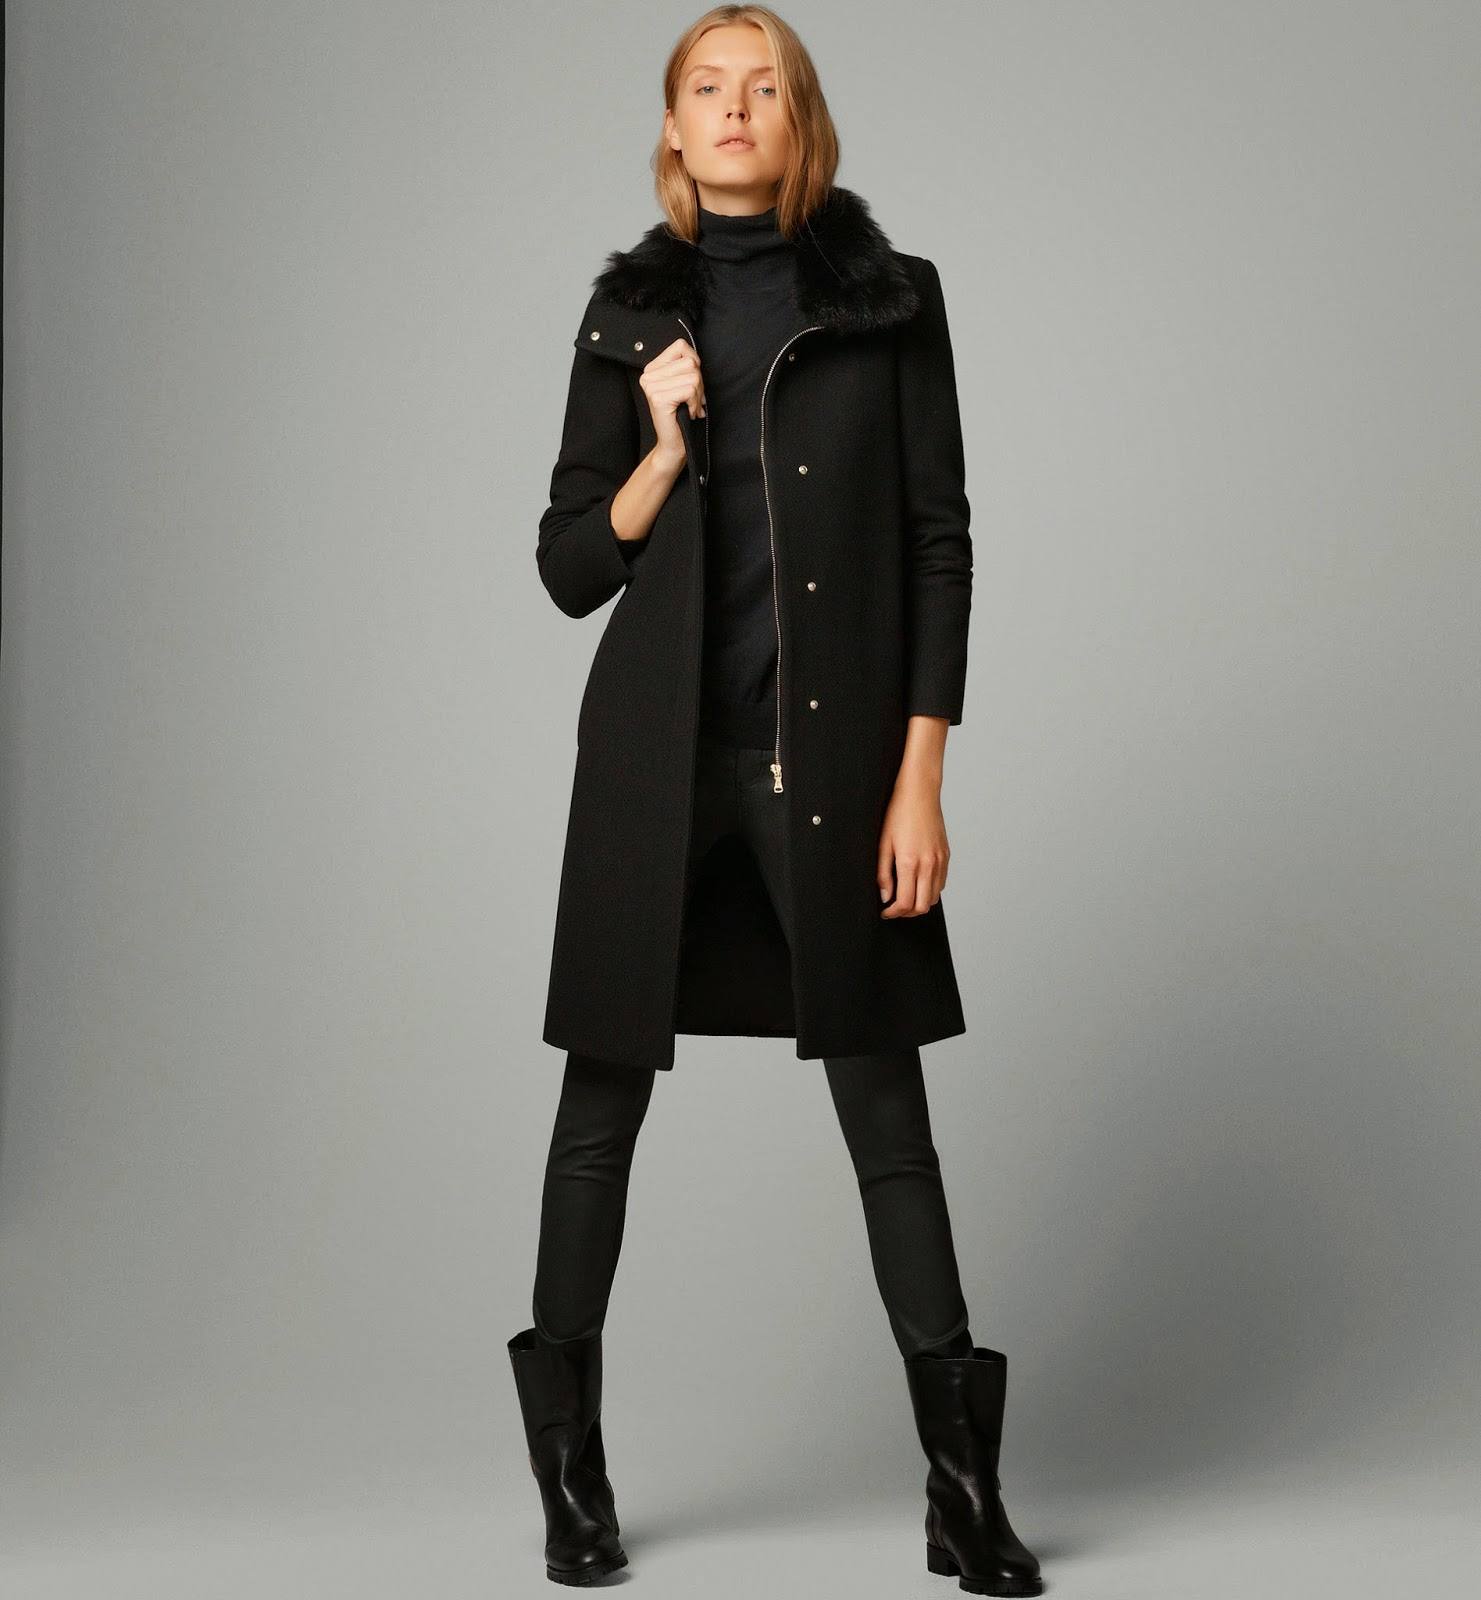 Massimo Dutti model looking chic in black